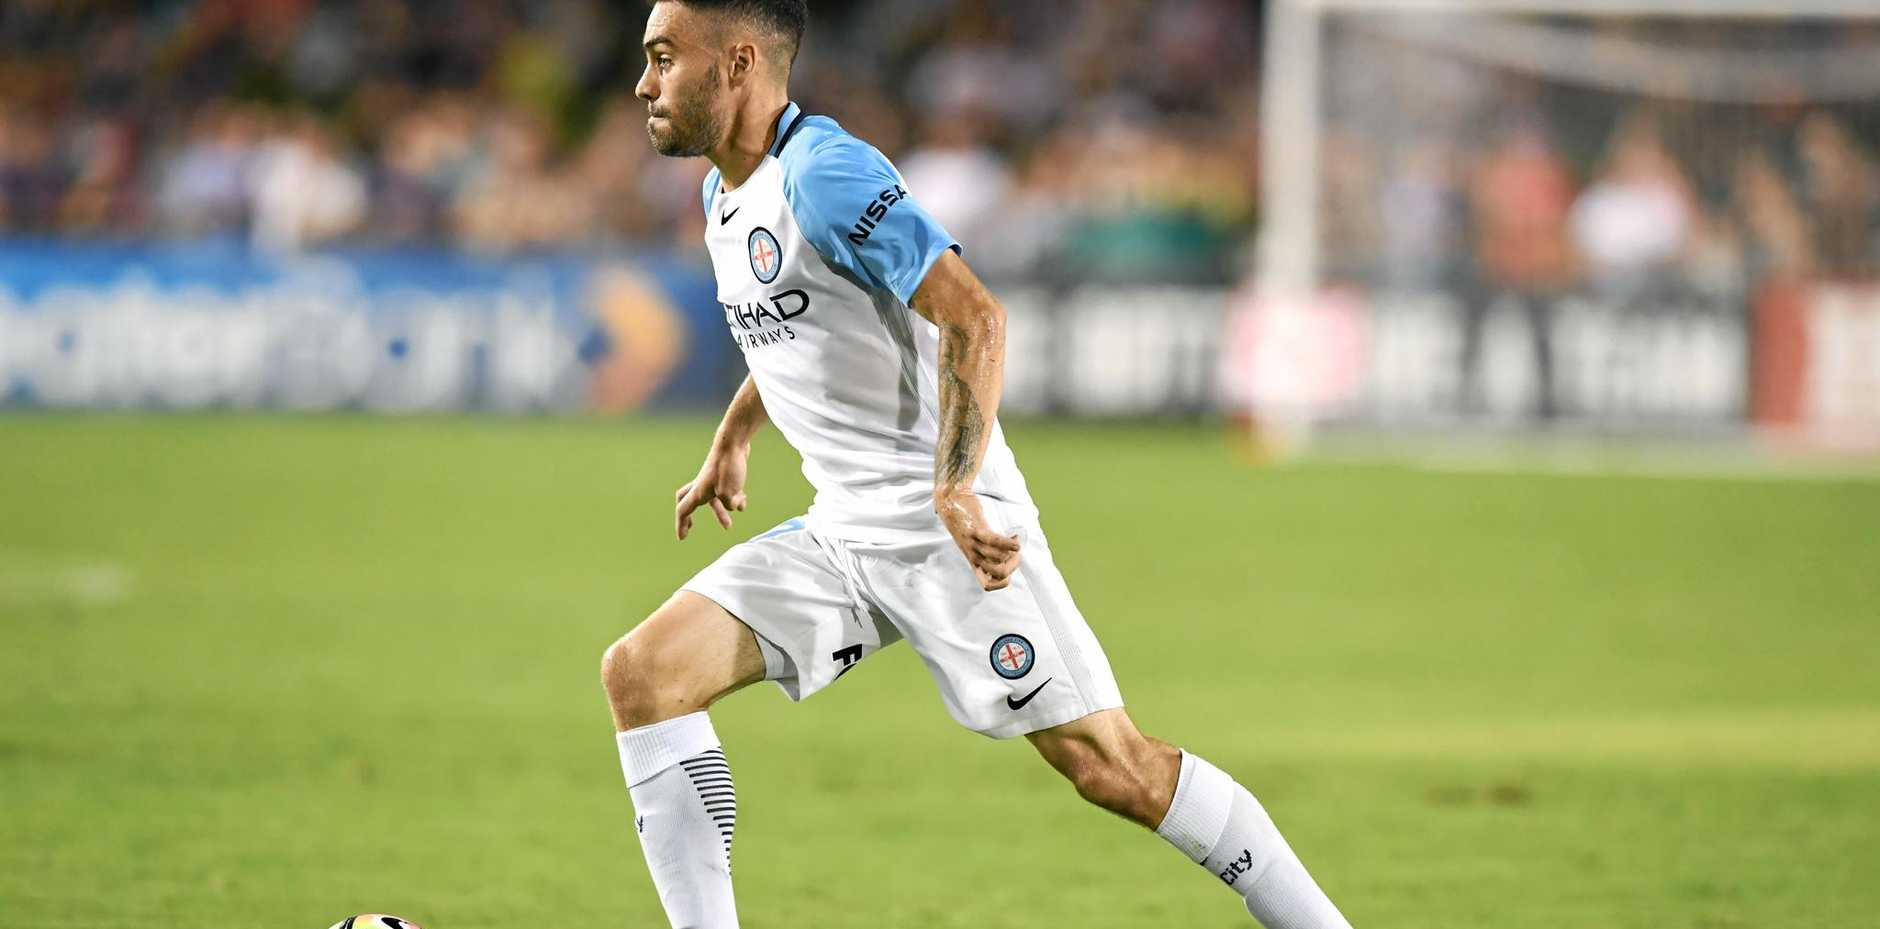 Anthony Caceres of Melbourne City dribbles the ball in round 17.